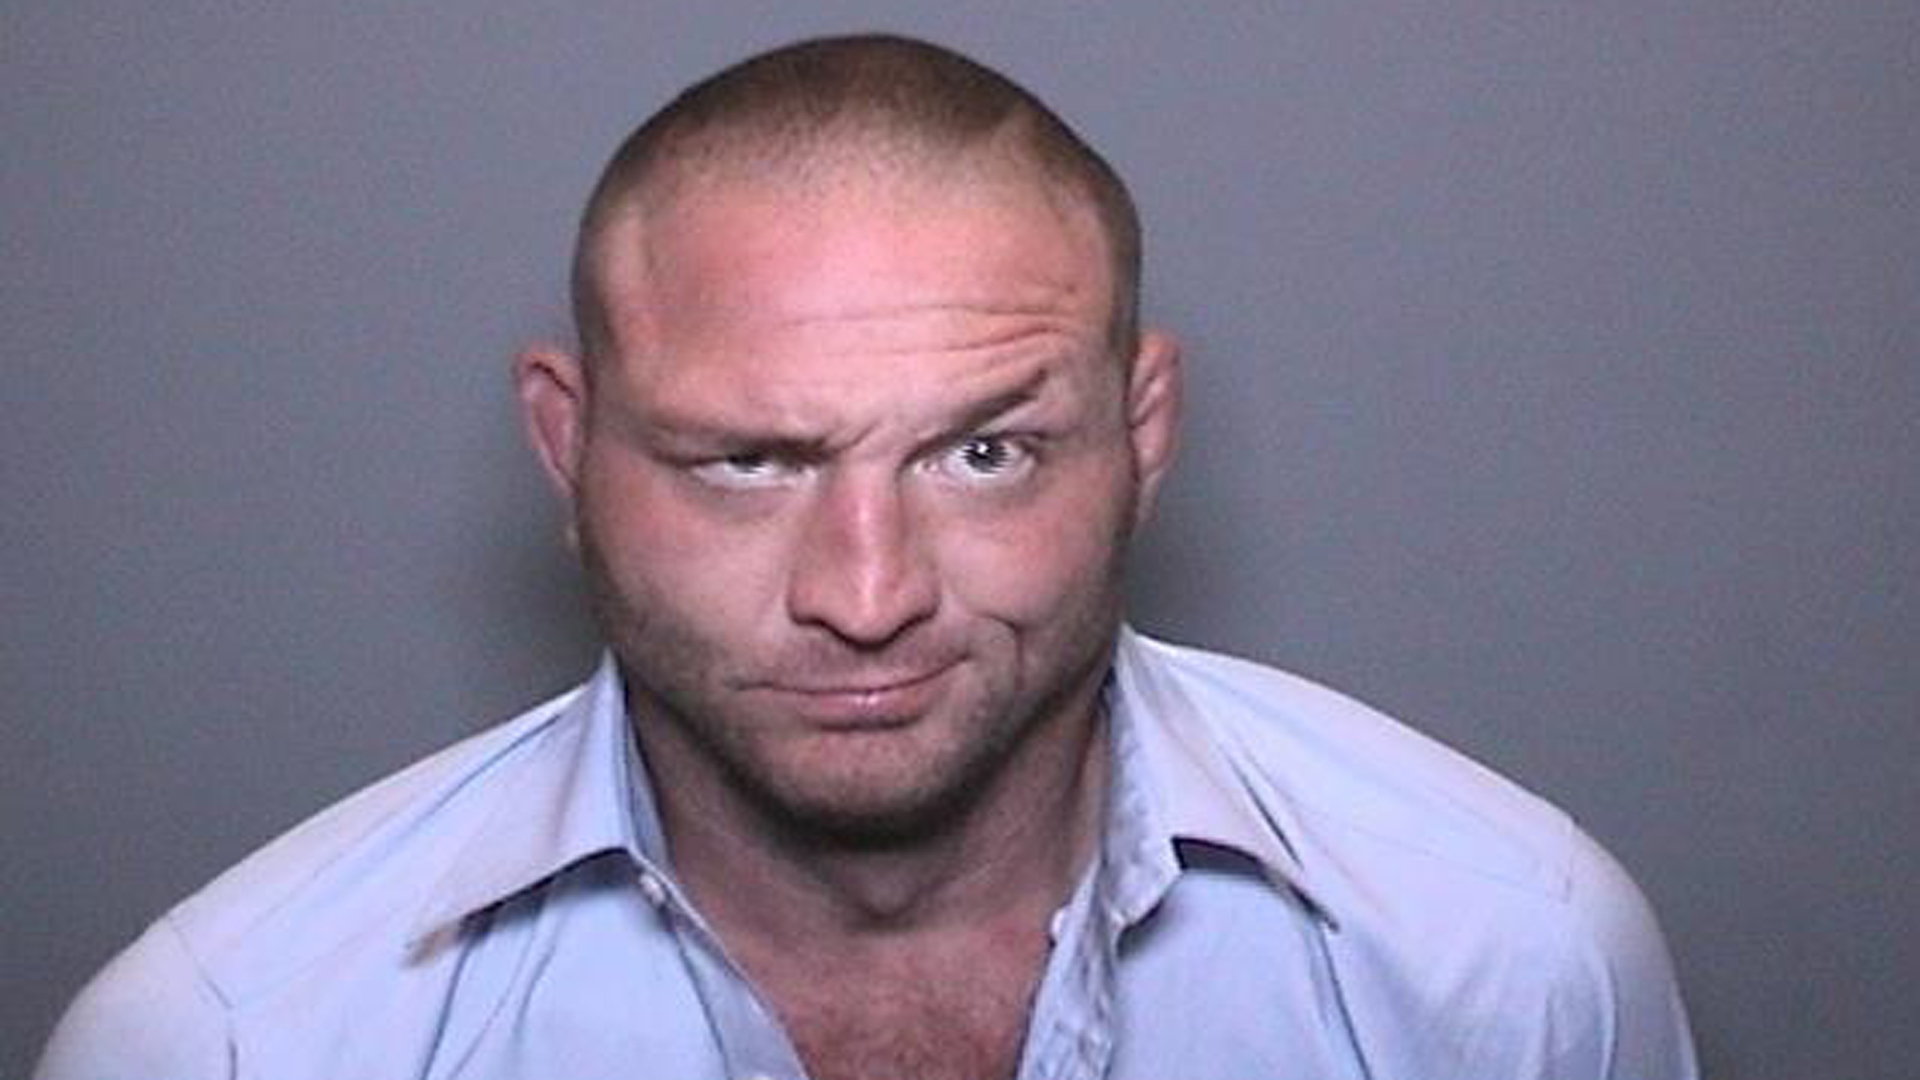 The Orange County District Attorney's Office released this booking photo of Jason Miller on Oct. 26, 2018.